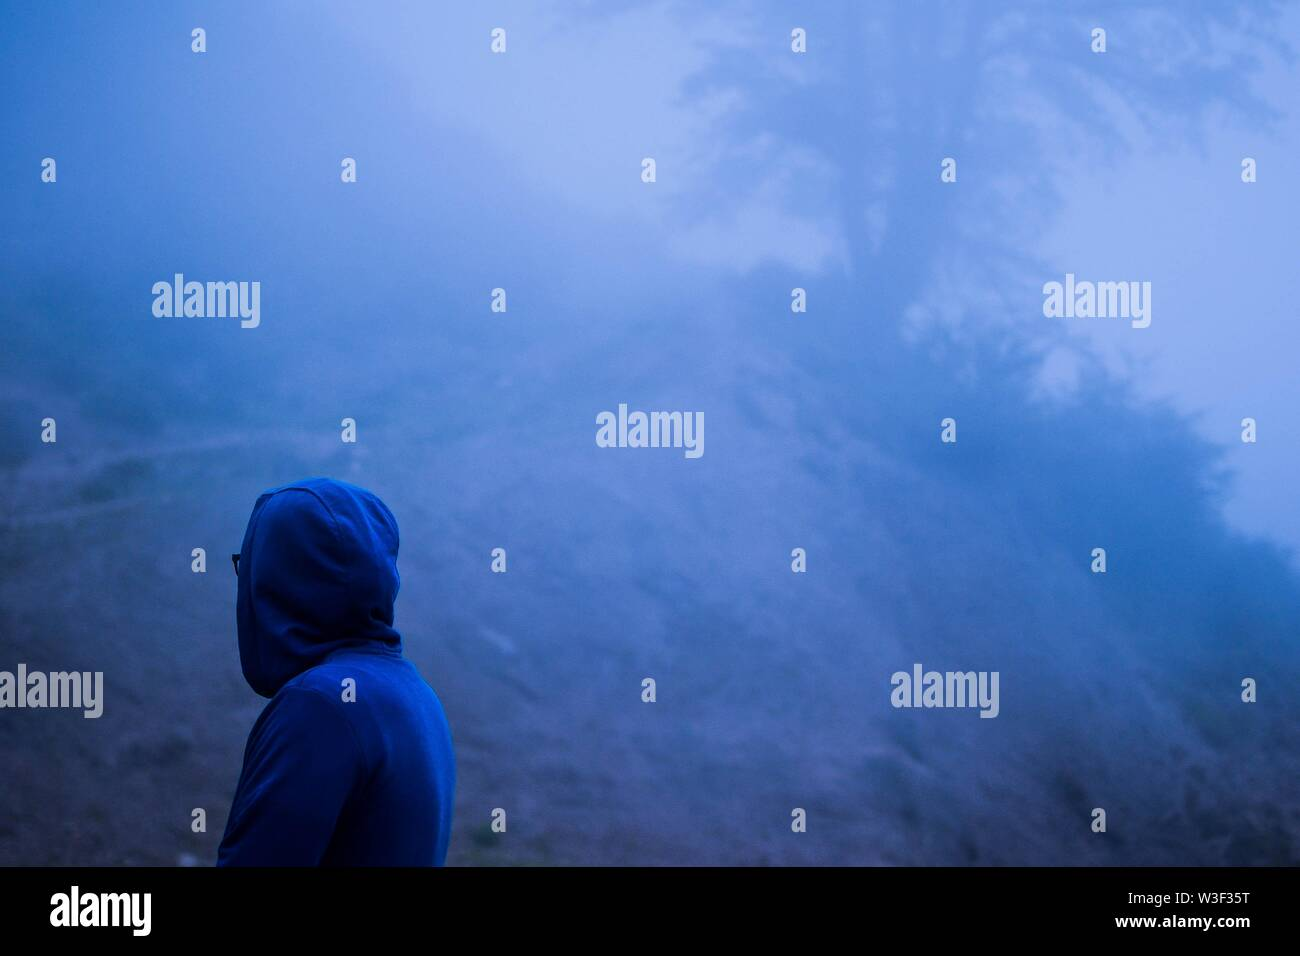 A person wearing a blue hoodie standing in a forest covered in fog - Stock Image